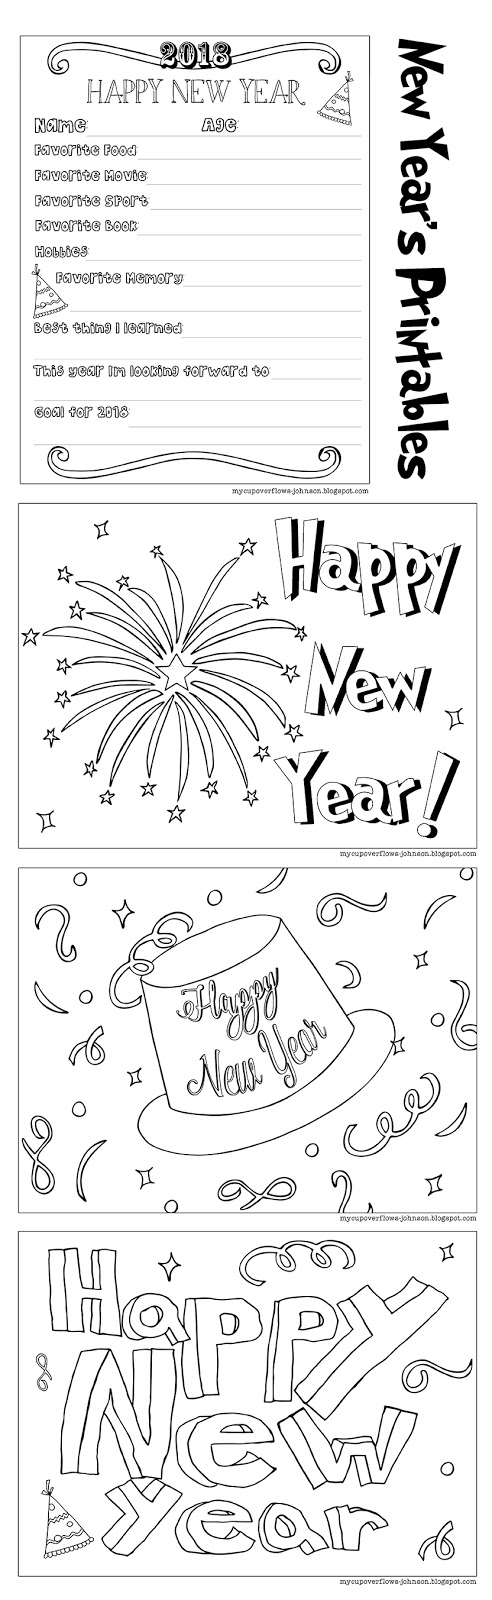 Free Happy New Year Coloring Pages